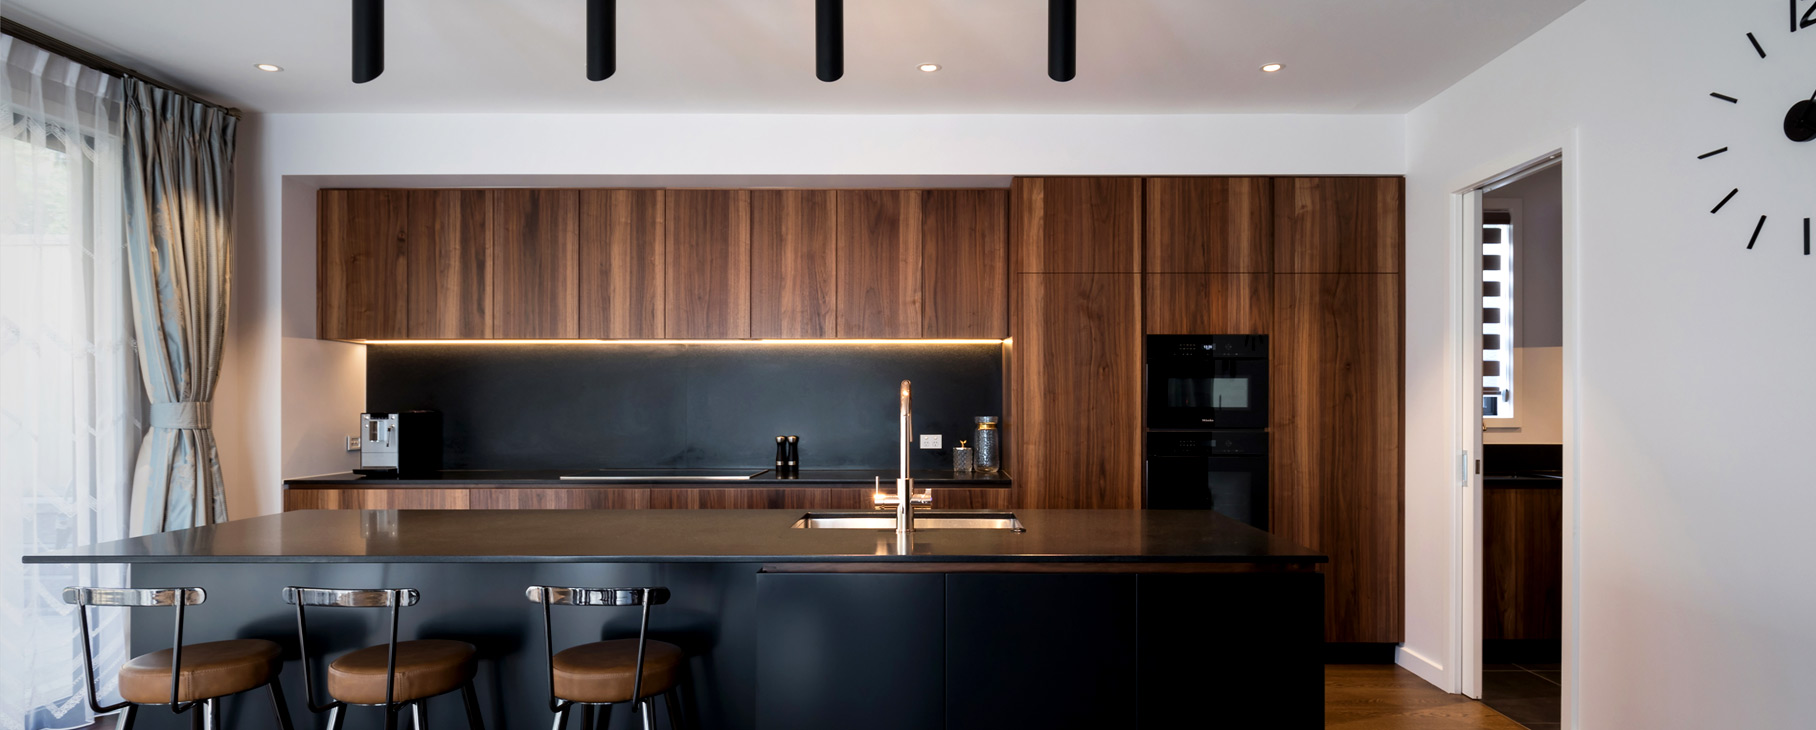 Neo Design custom kitchen walnut black granite minimalist auckland